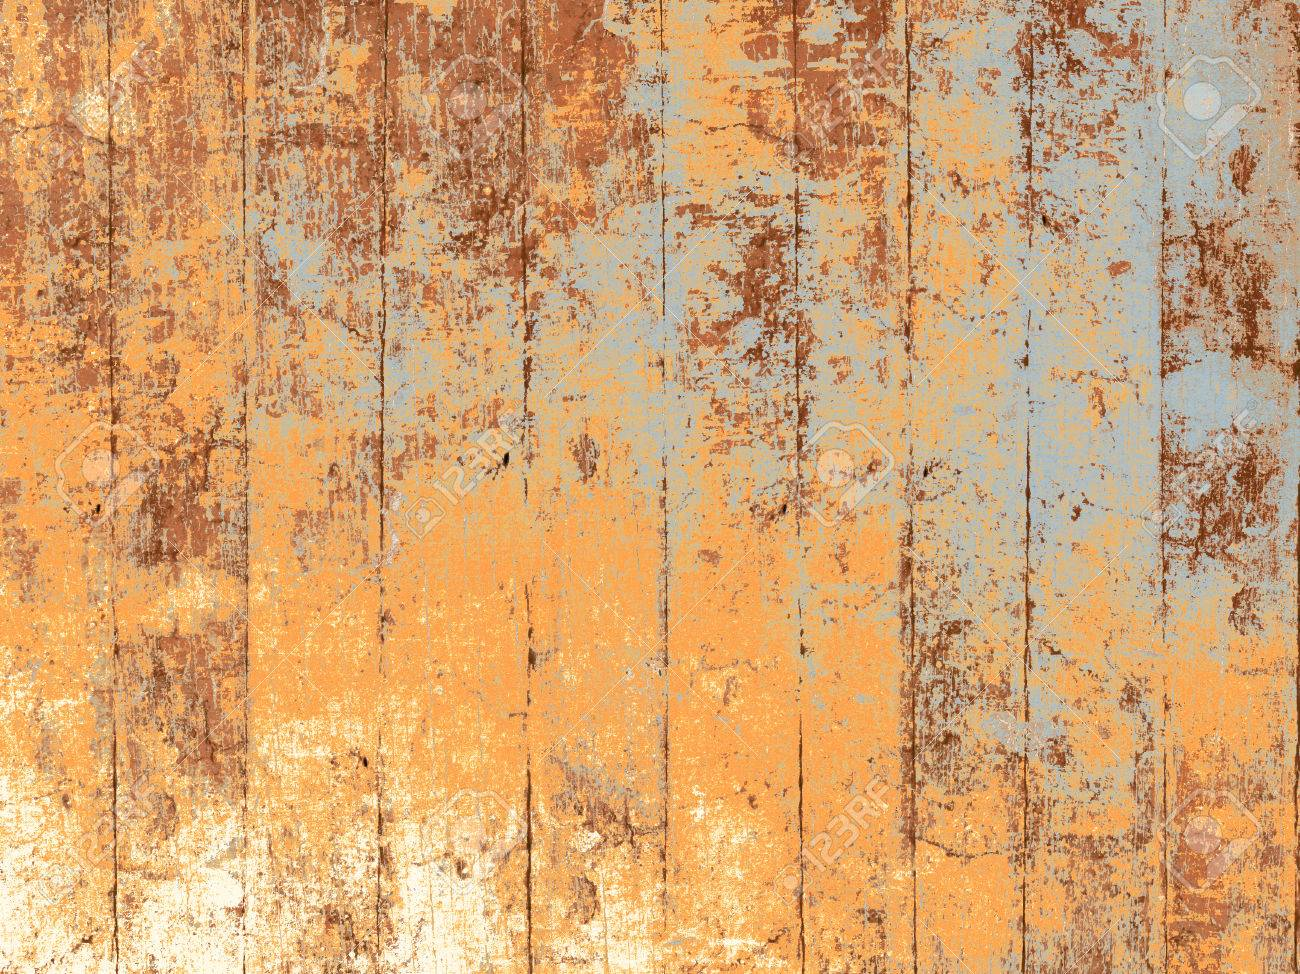 Weathered Wood Background With Multicolored Floorboards In Grunge 1300x974